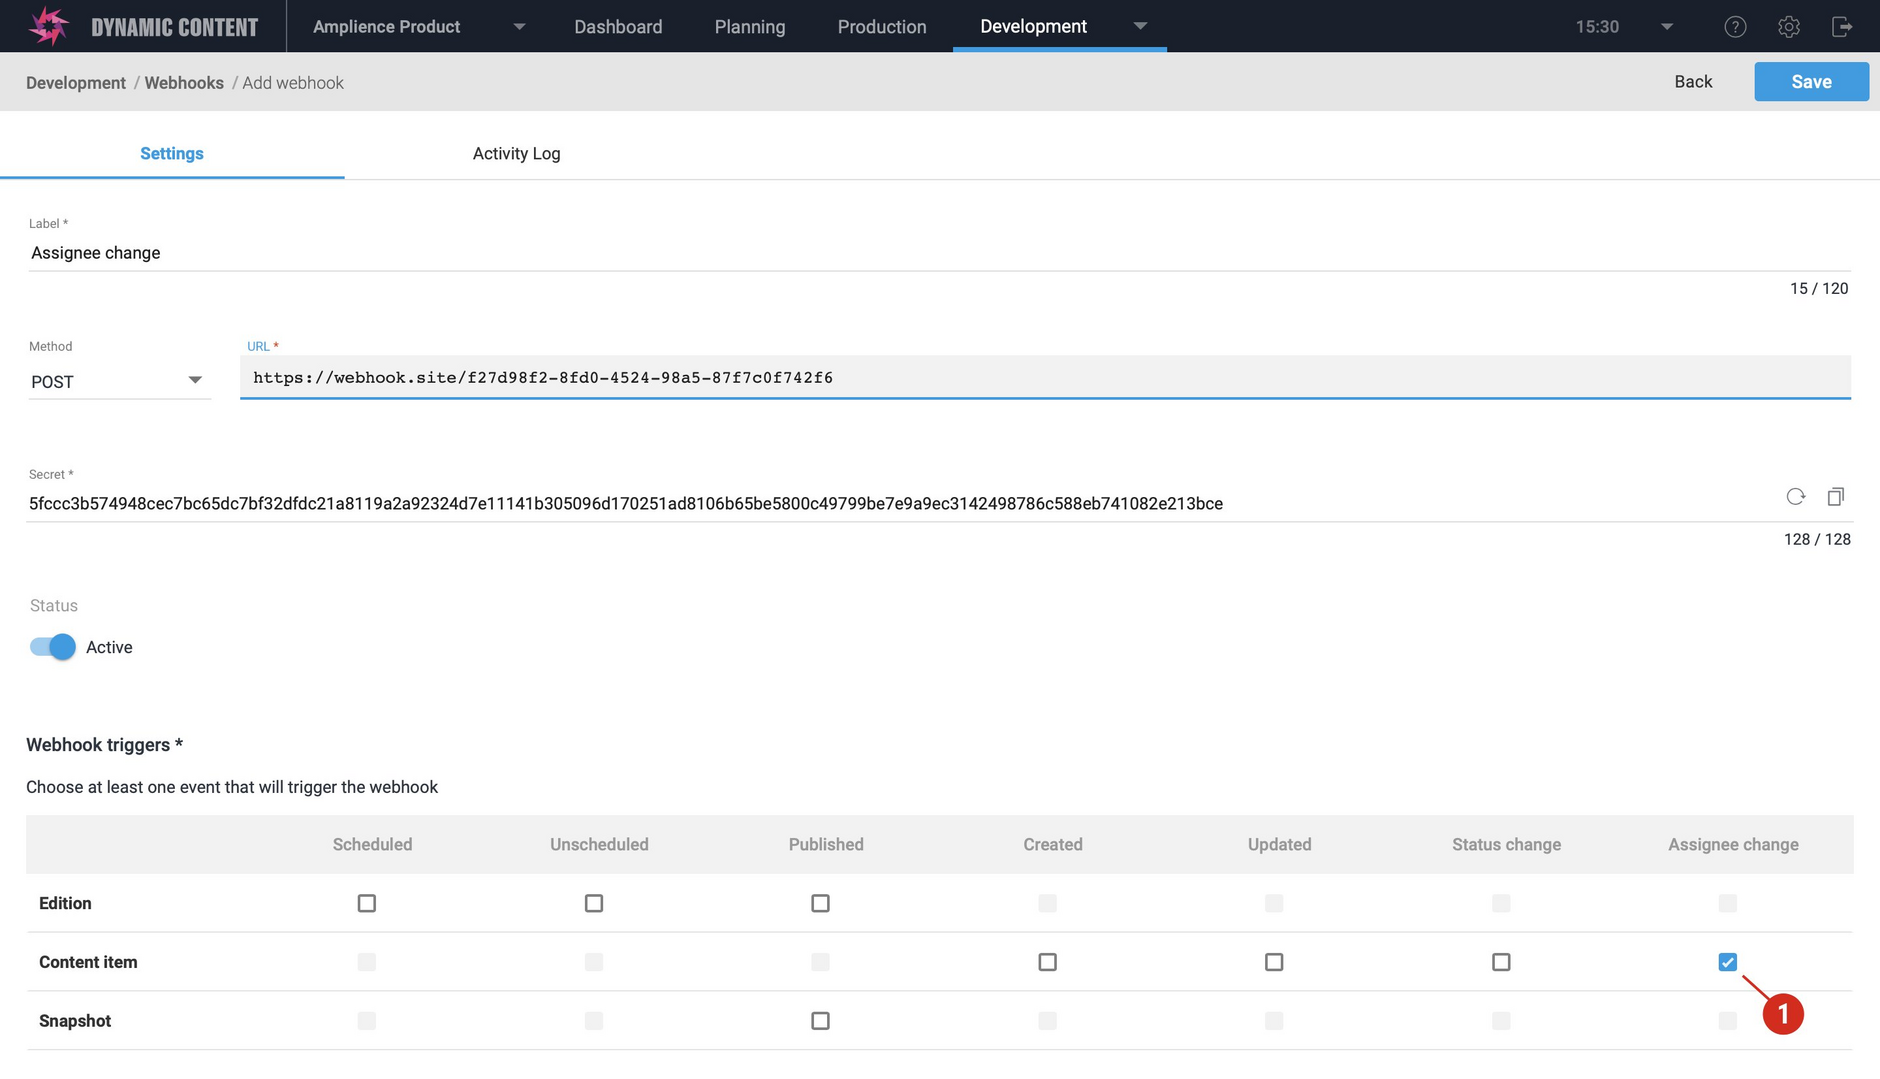 The content item assignee changed webhook event is triggered by adding one or more assignees to a content item or changing the existing assignees